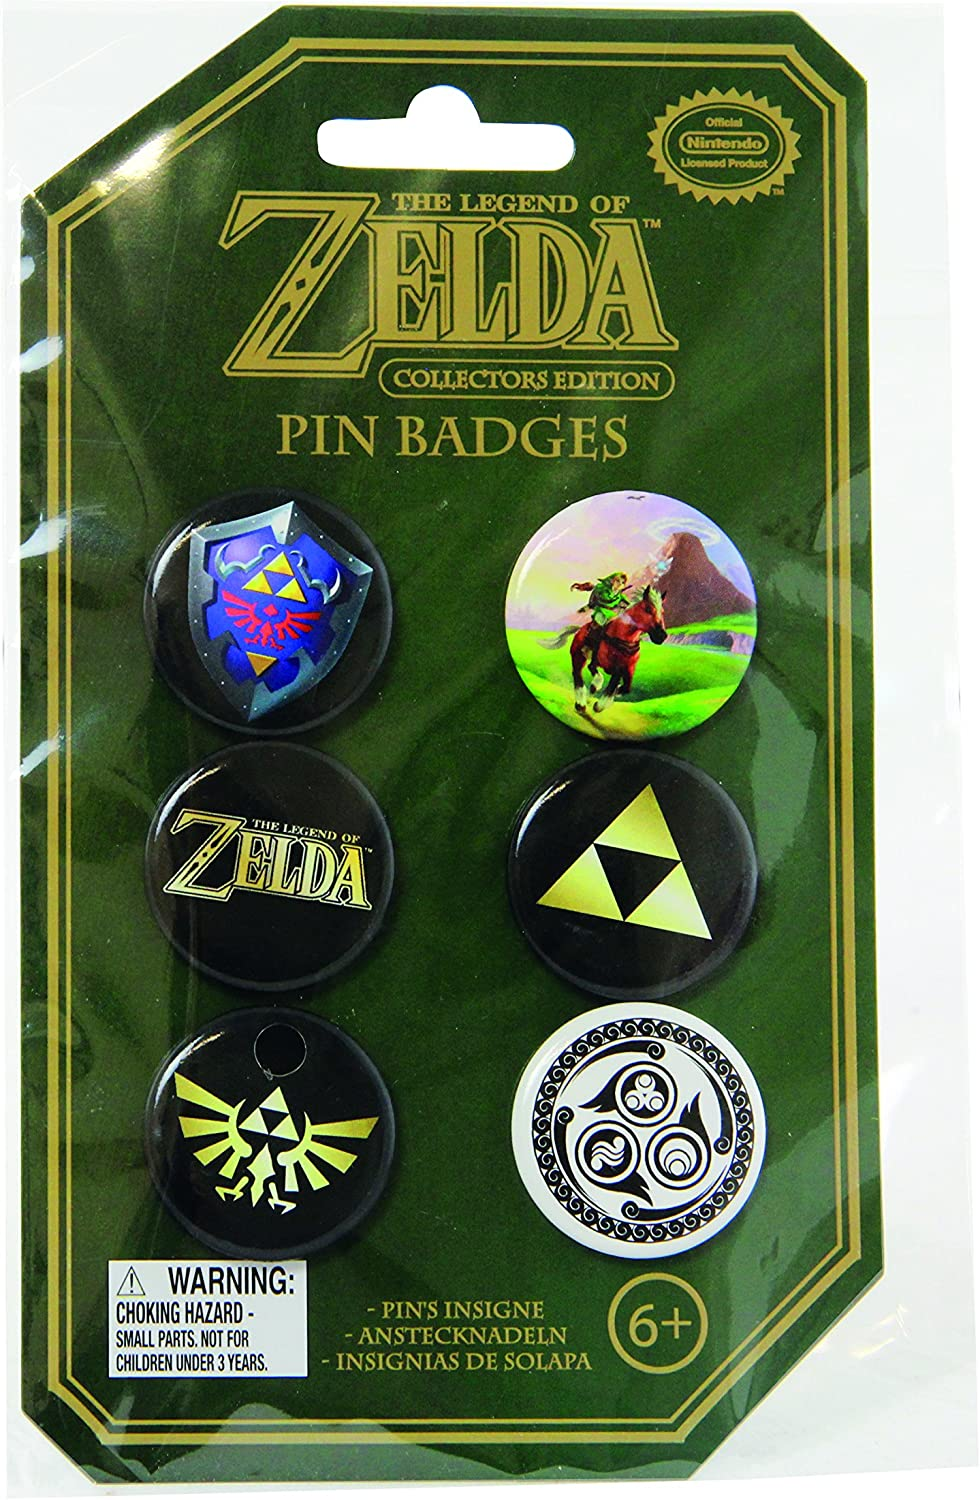 Paladone Nintendo Officially Licensed Merchandise - The Legend of Zelda Pin Badges: Toys & Games